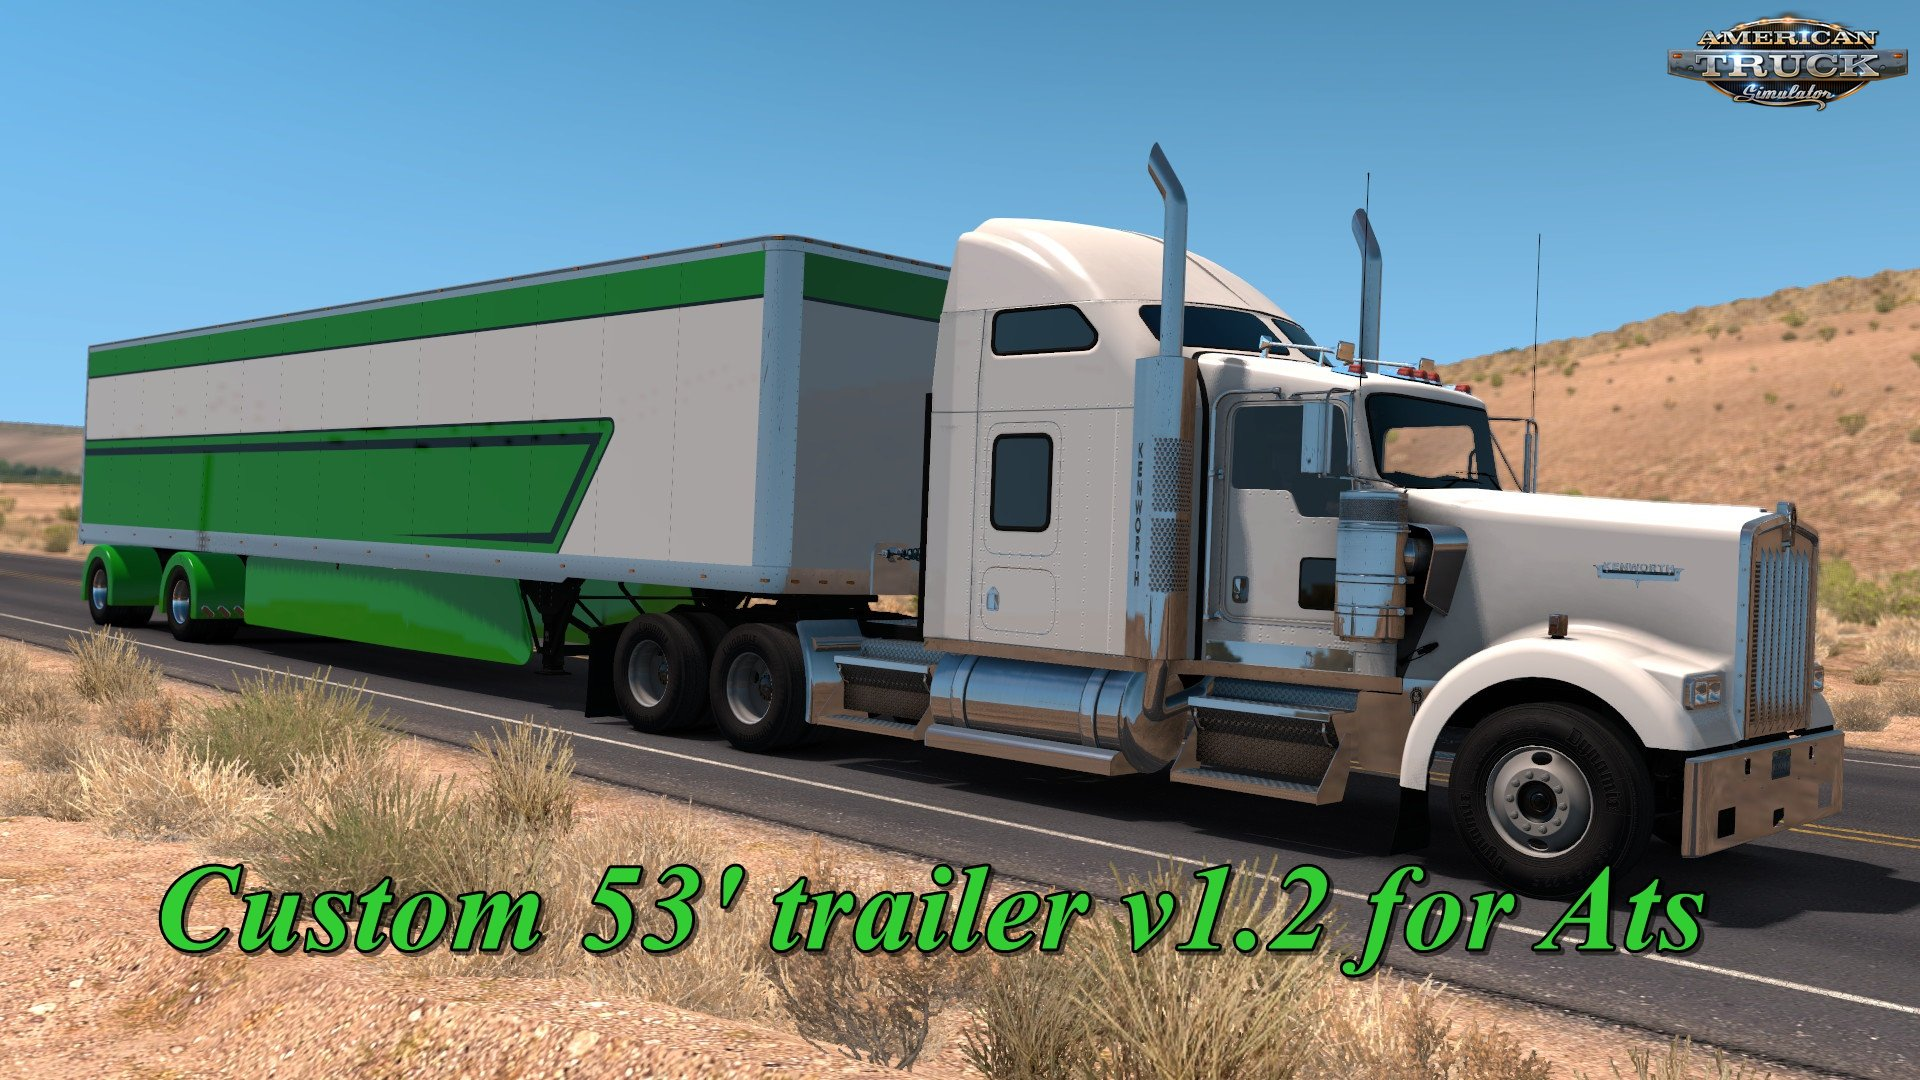 Custom 53' trailer v1.2 for Ats